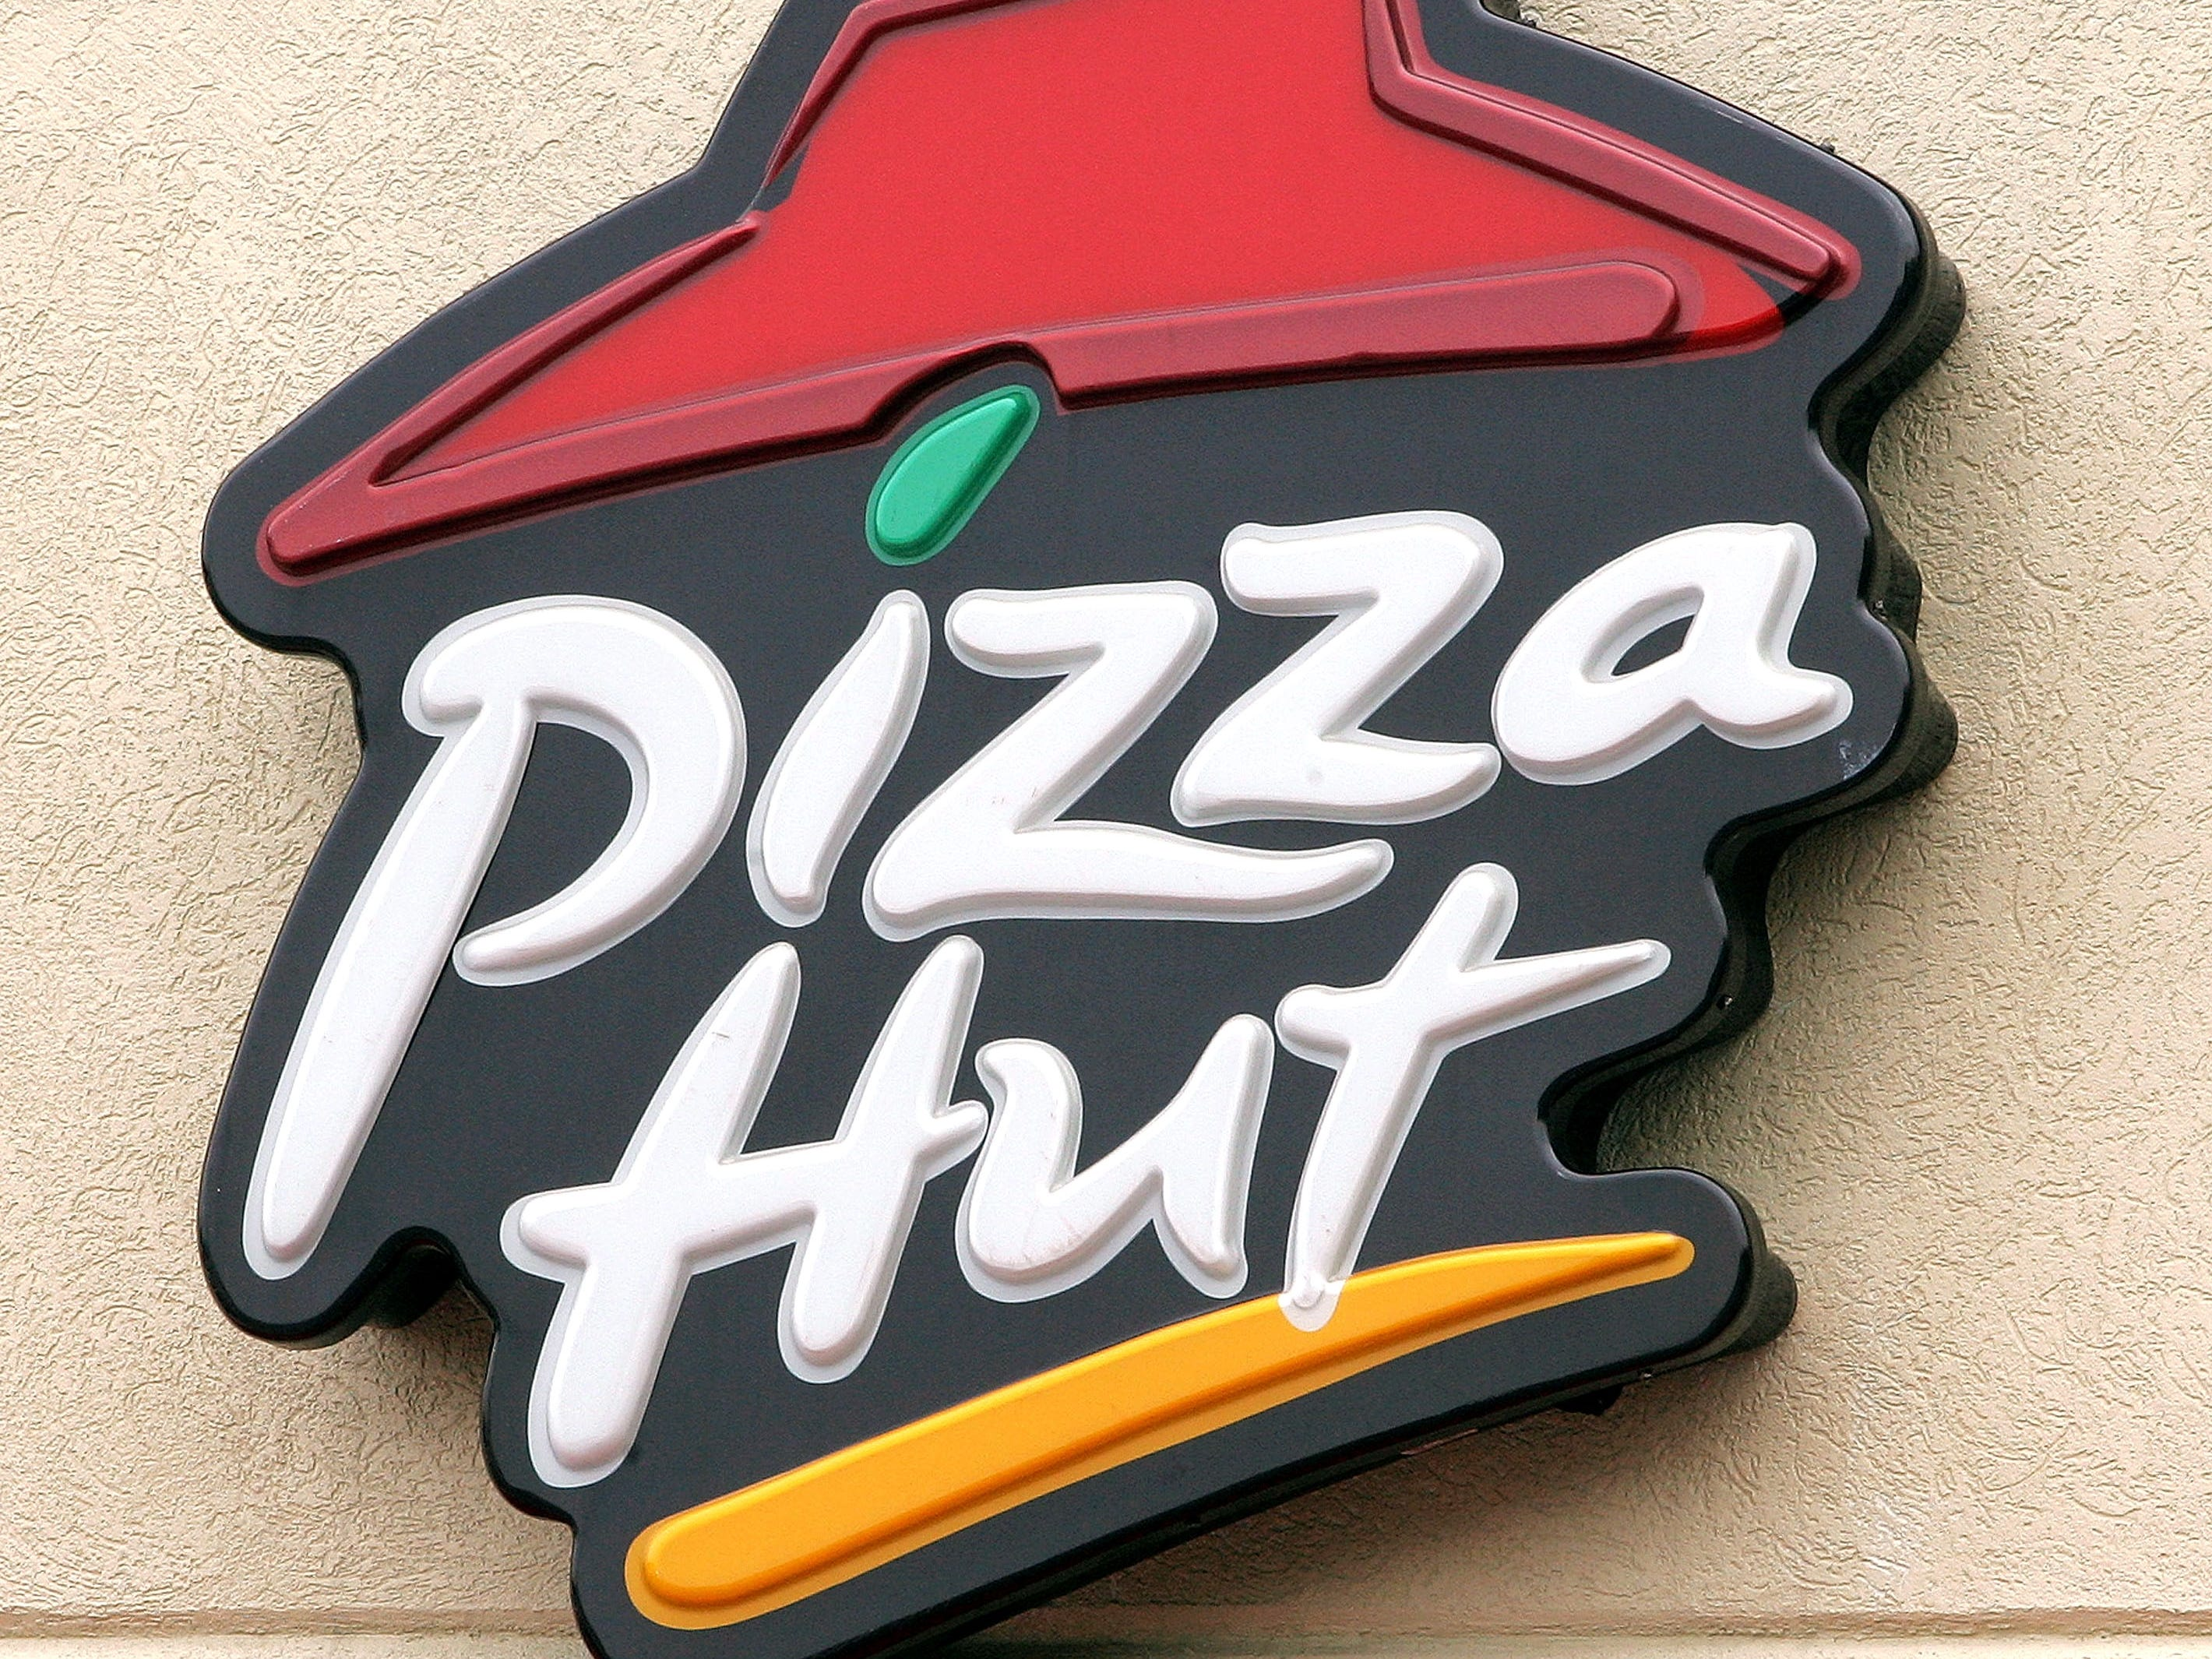 Pizza Hut, hiring 340. The pizza restaurant and delivery chain is adding jobs in the Phoenix area. More info: jobs.pizzahut.com.